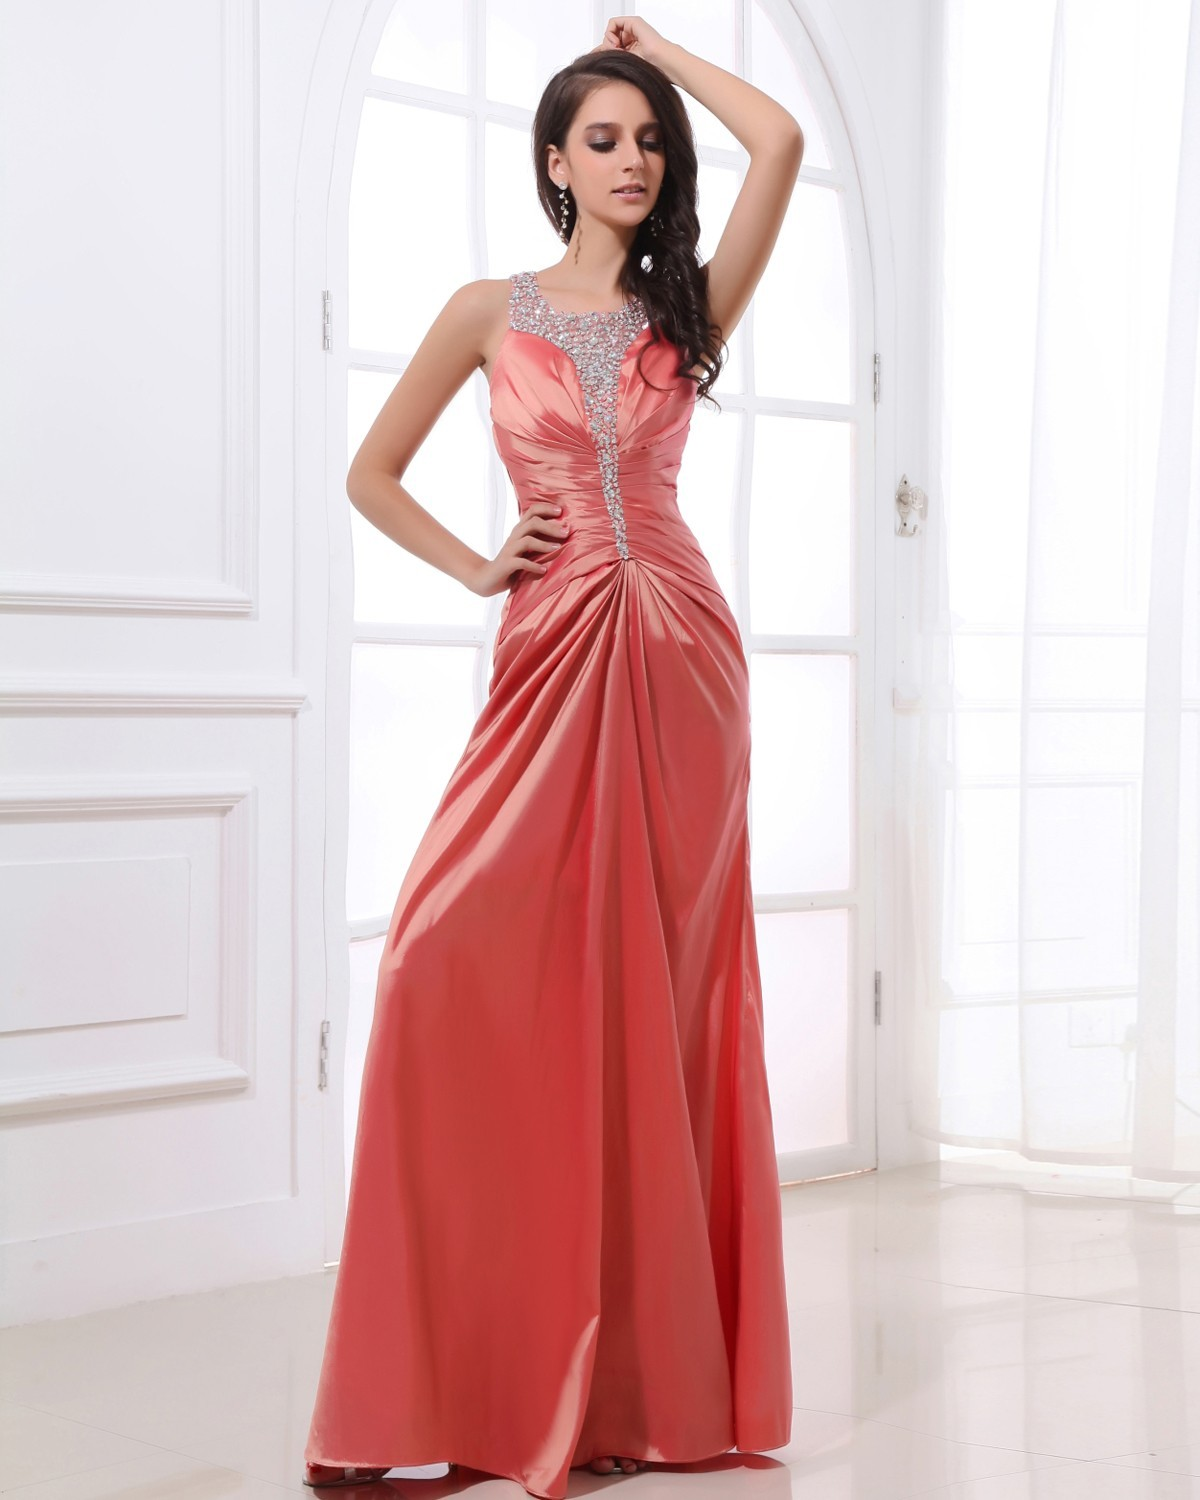 Evening Dresses from Satin Fabric by Leopold Terence